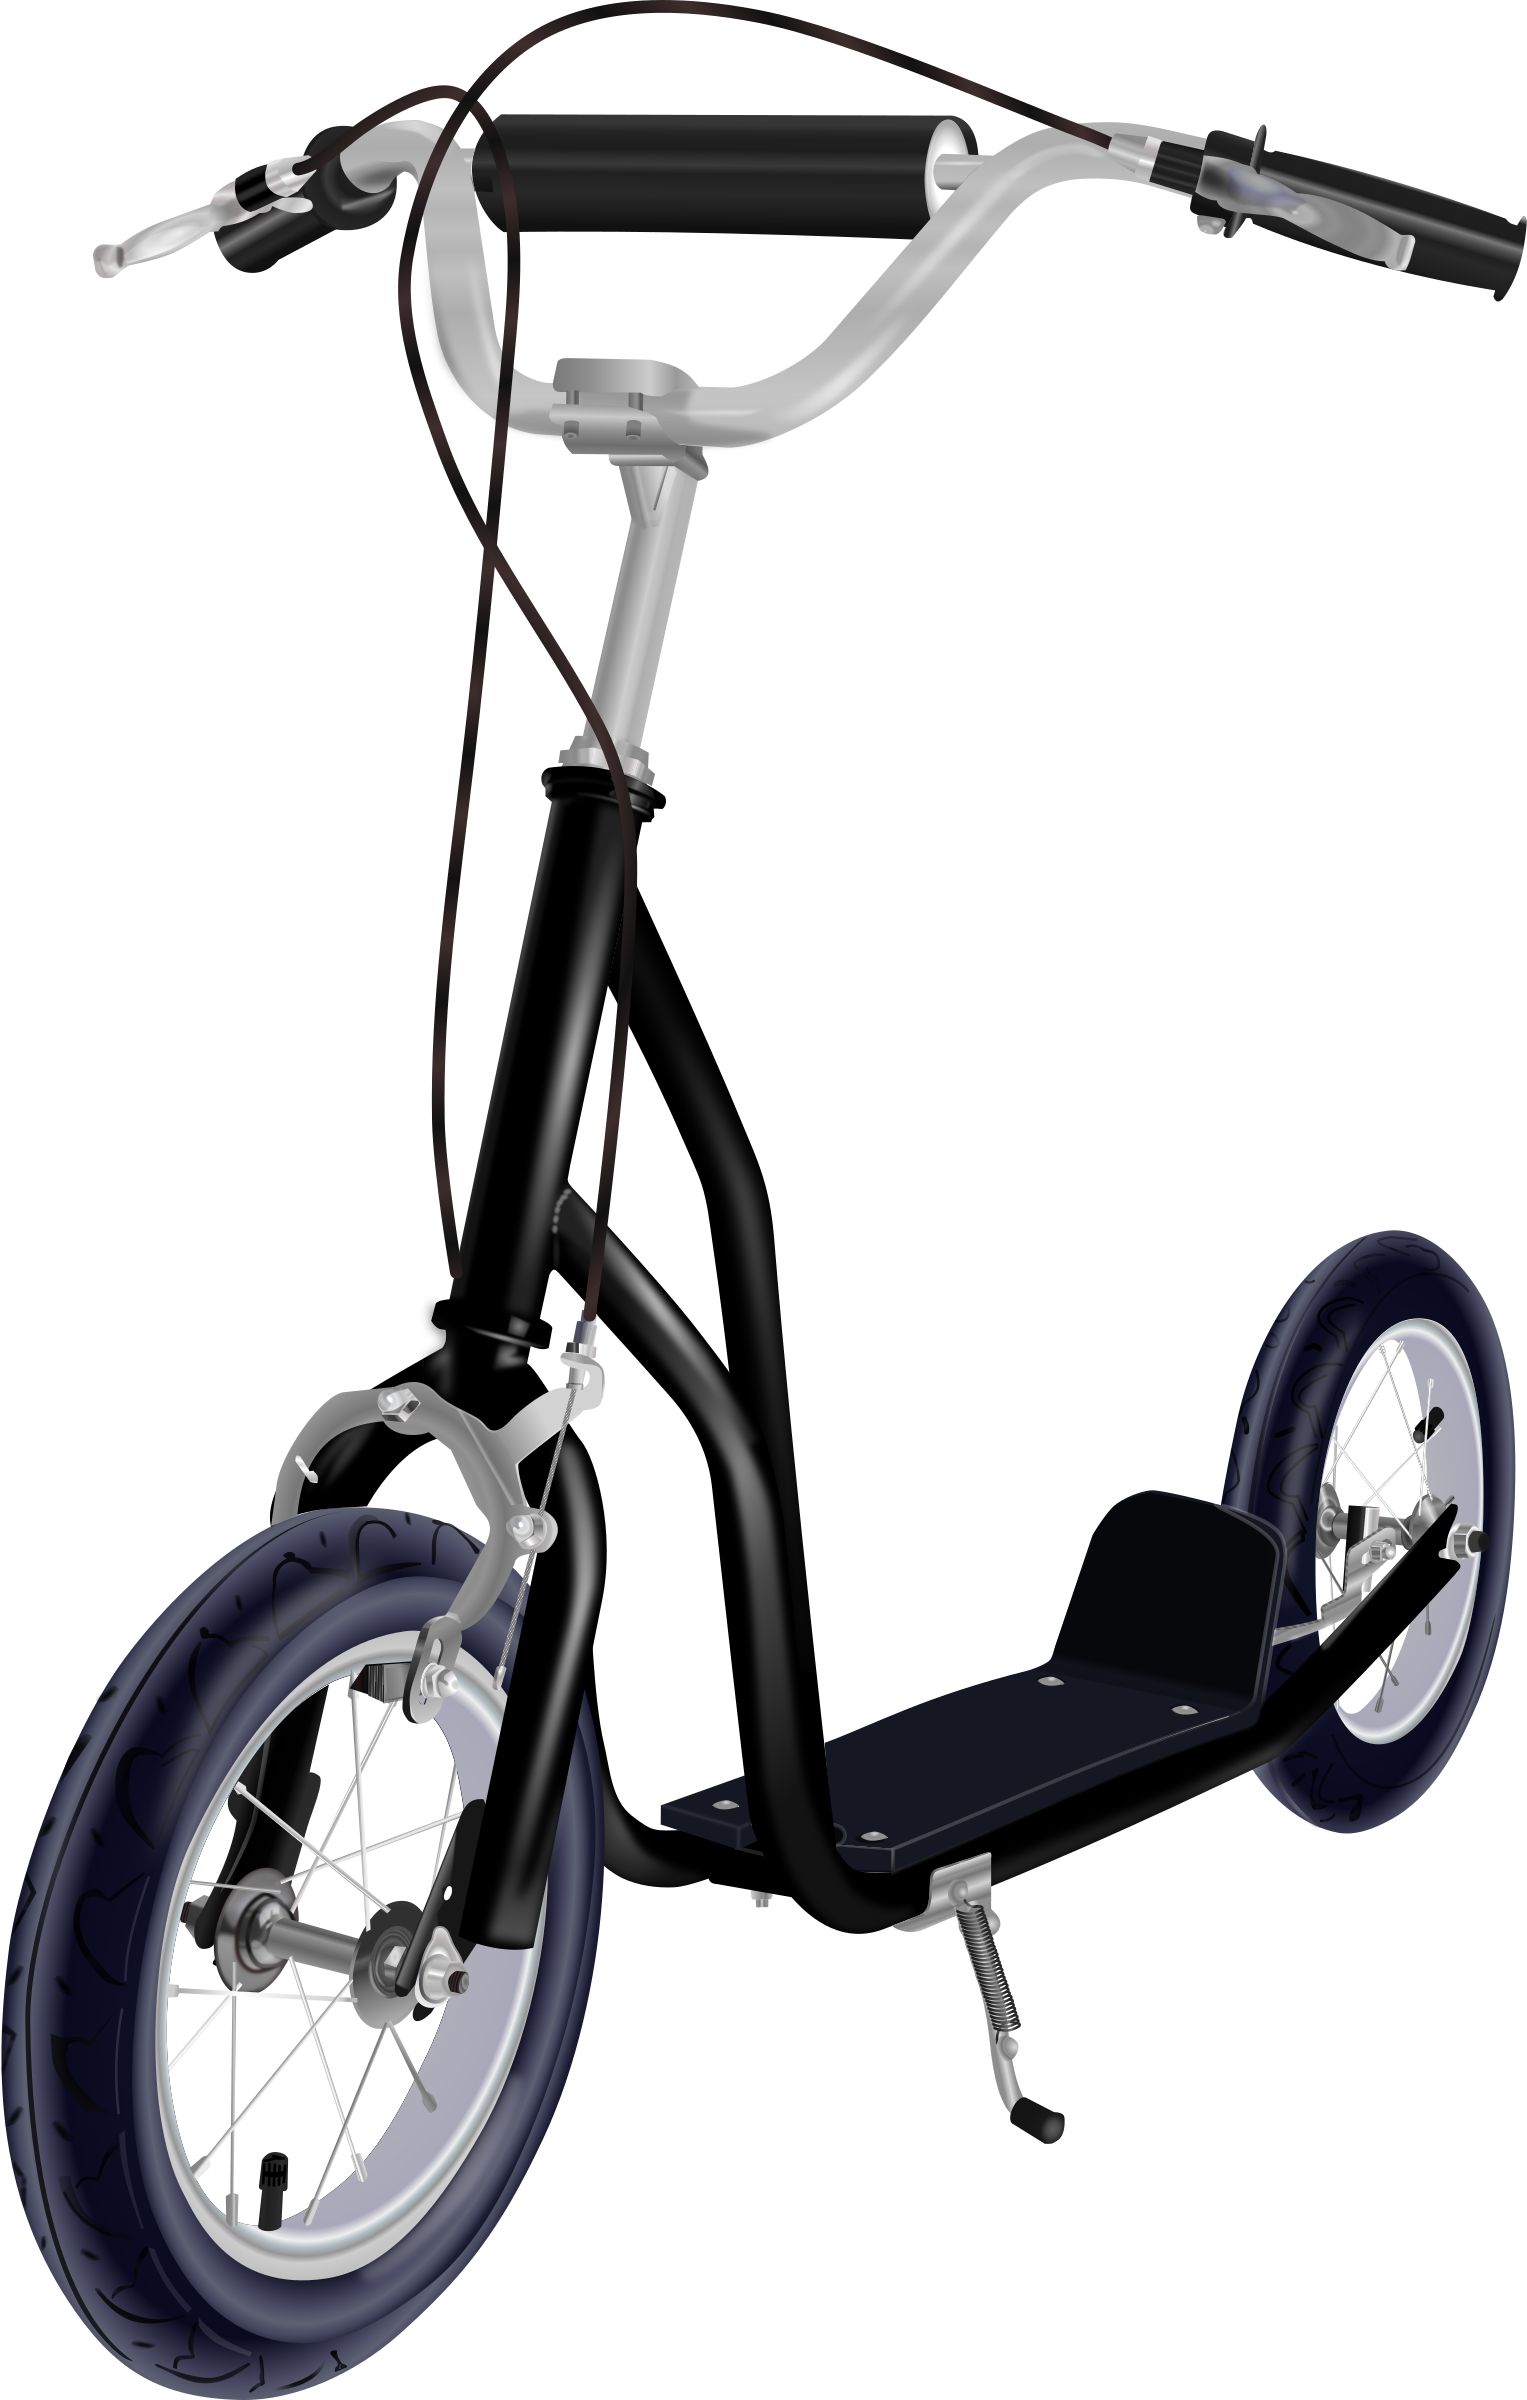 Free download of Kick Scooter In PNG